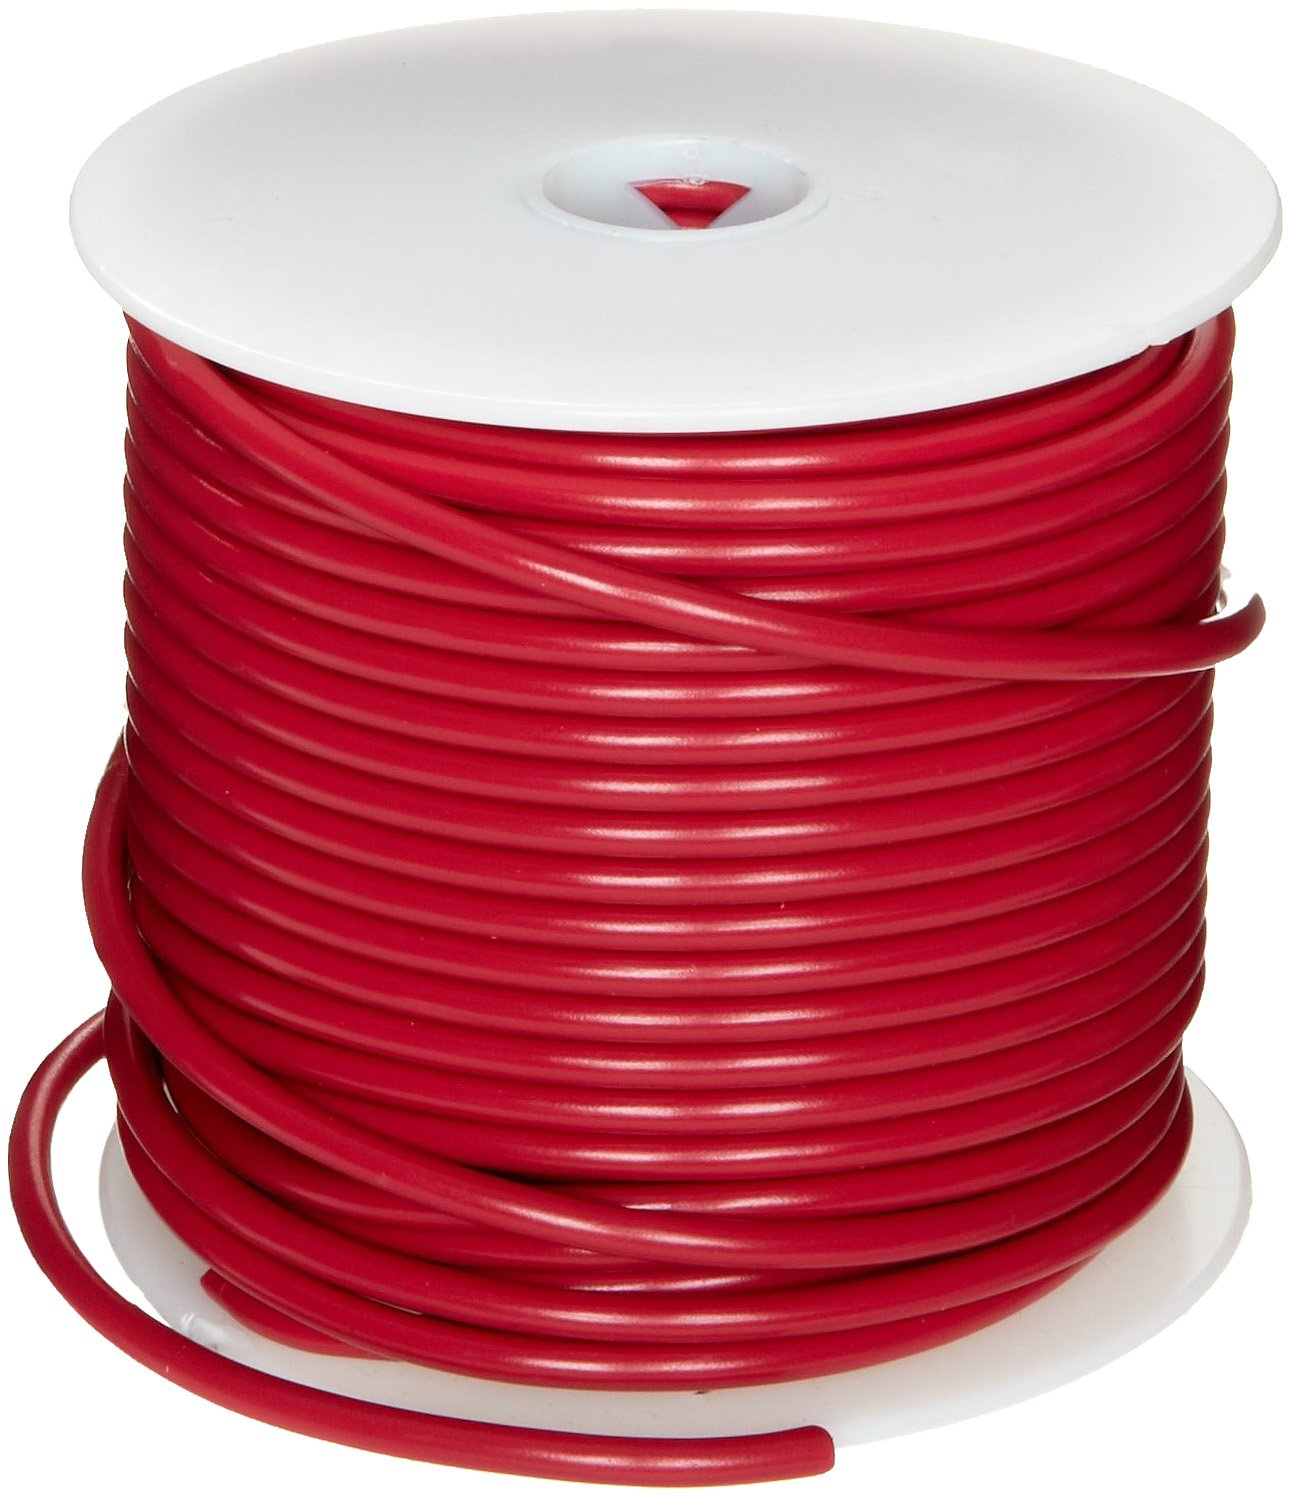 Pack of 1 0.080 Diameter 1000/' Length GPT Automotive Copper Wire Red 12 AWG 1000 Length 0.080 Diameter Small Parts BEM12-2 Pack of 1